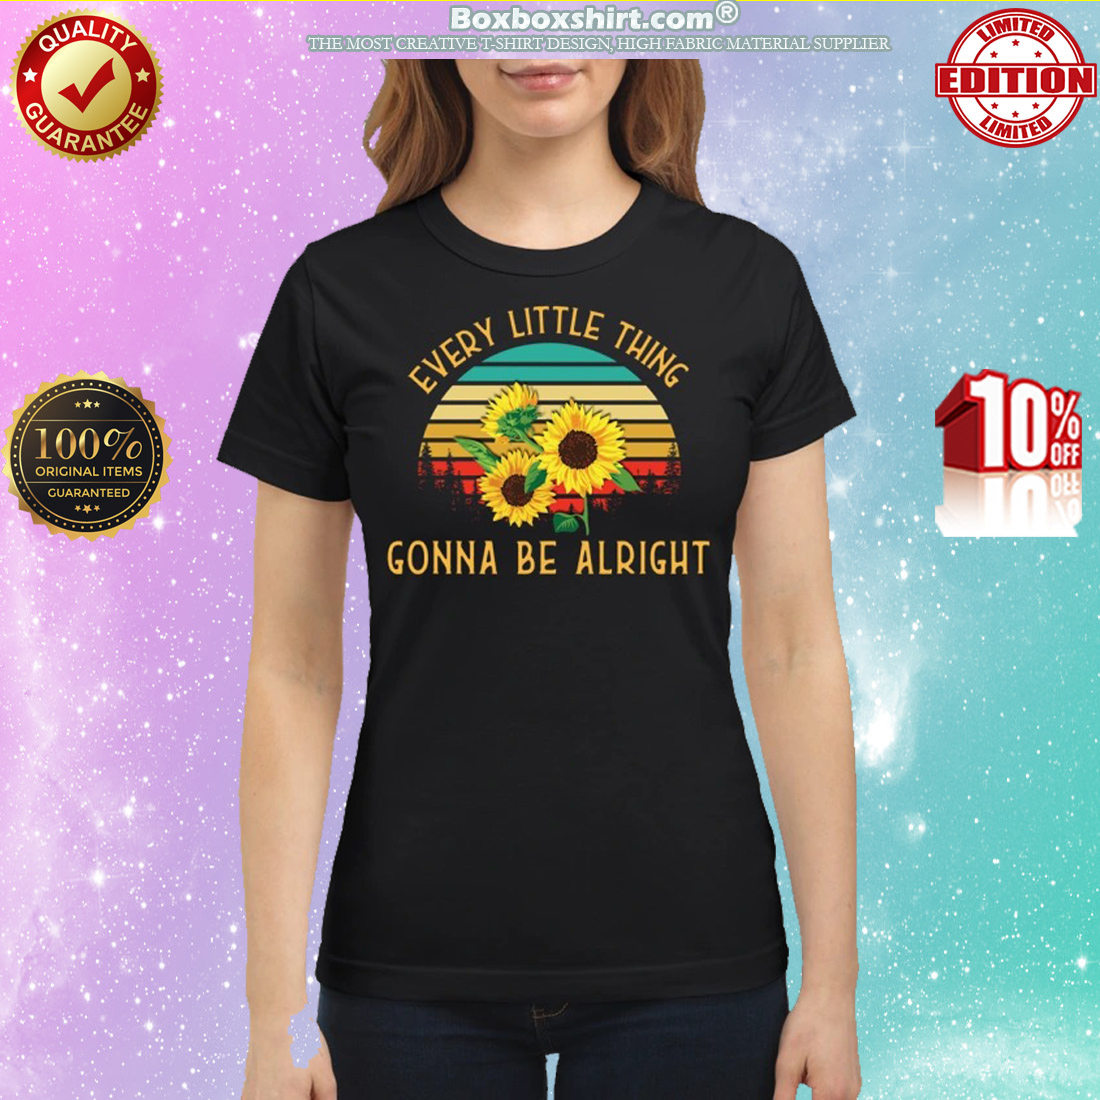 Sunflowers every little thing gonna be alright classic shirt